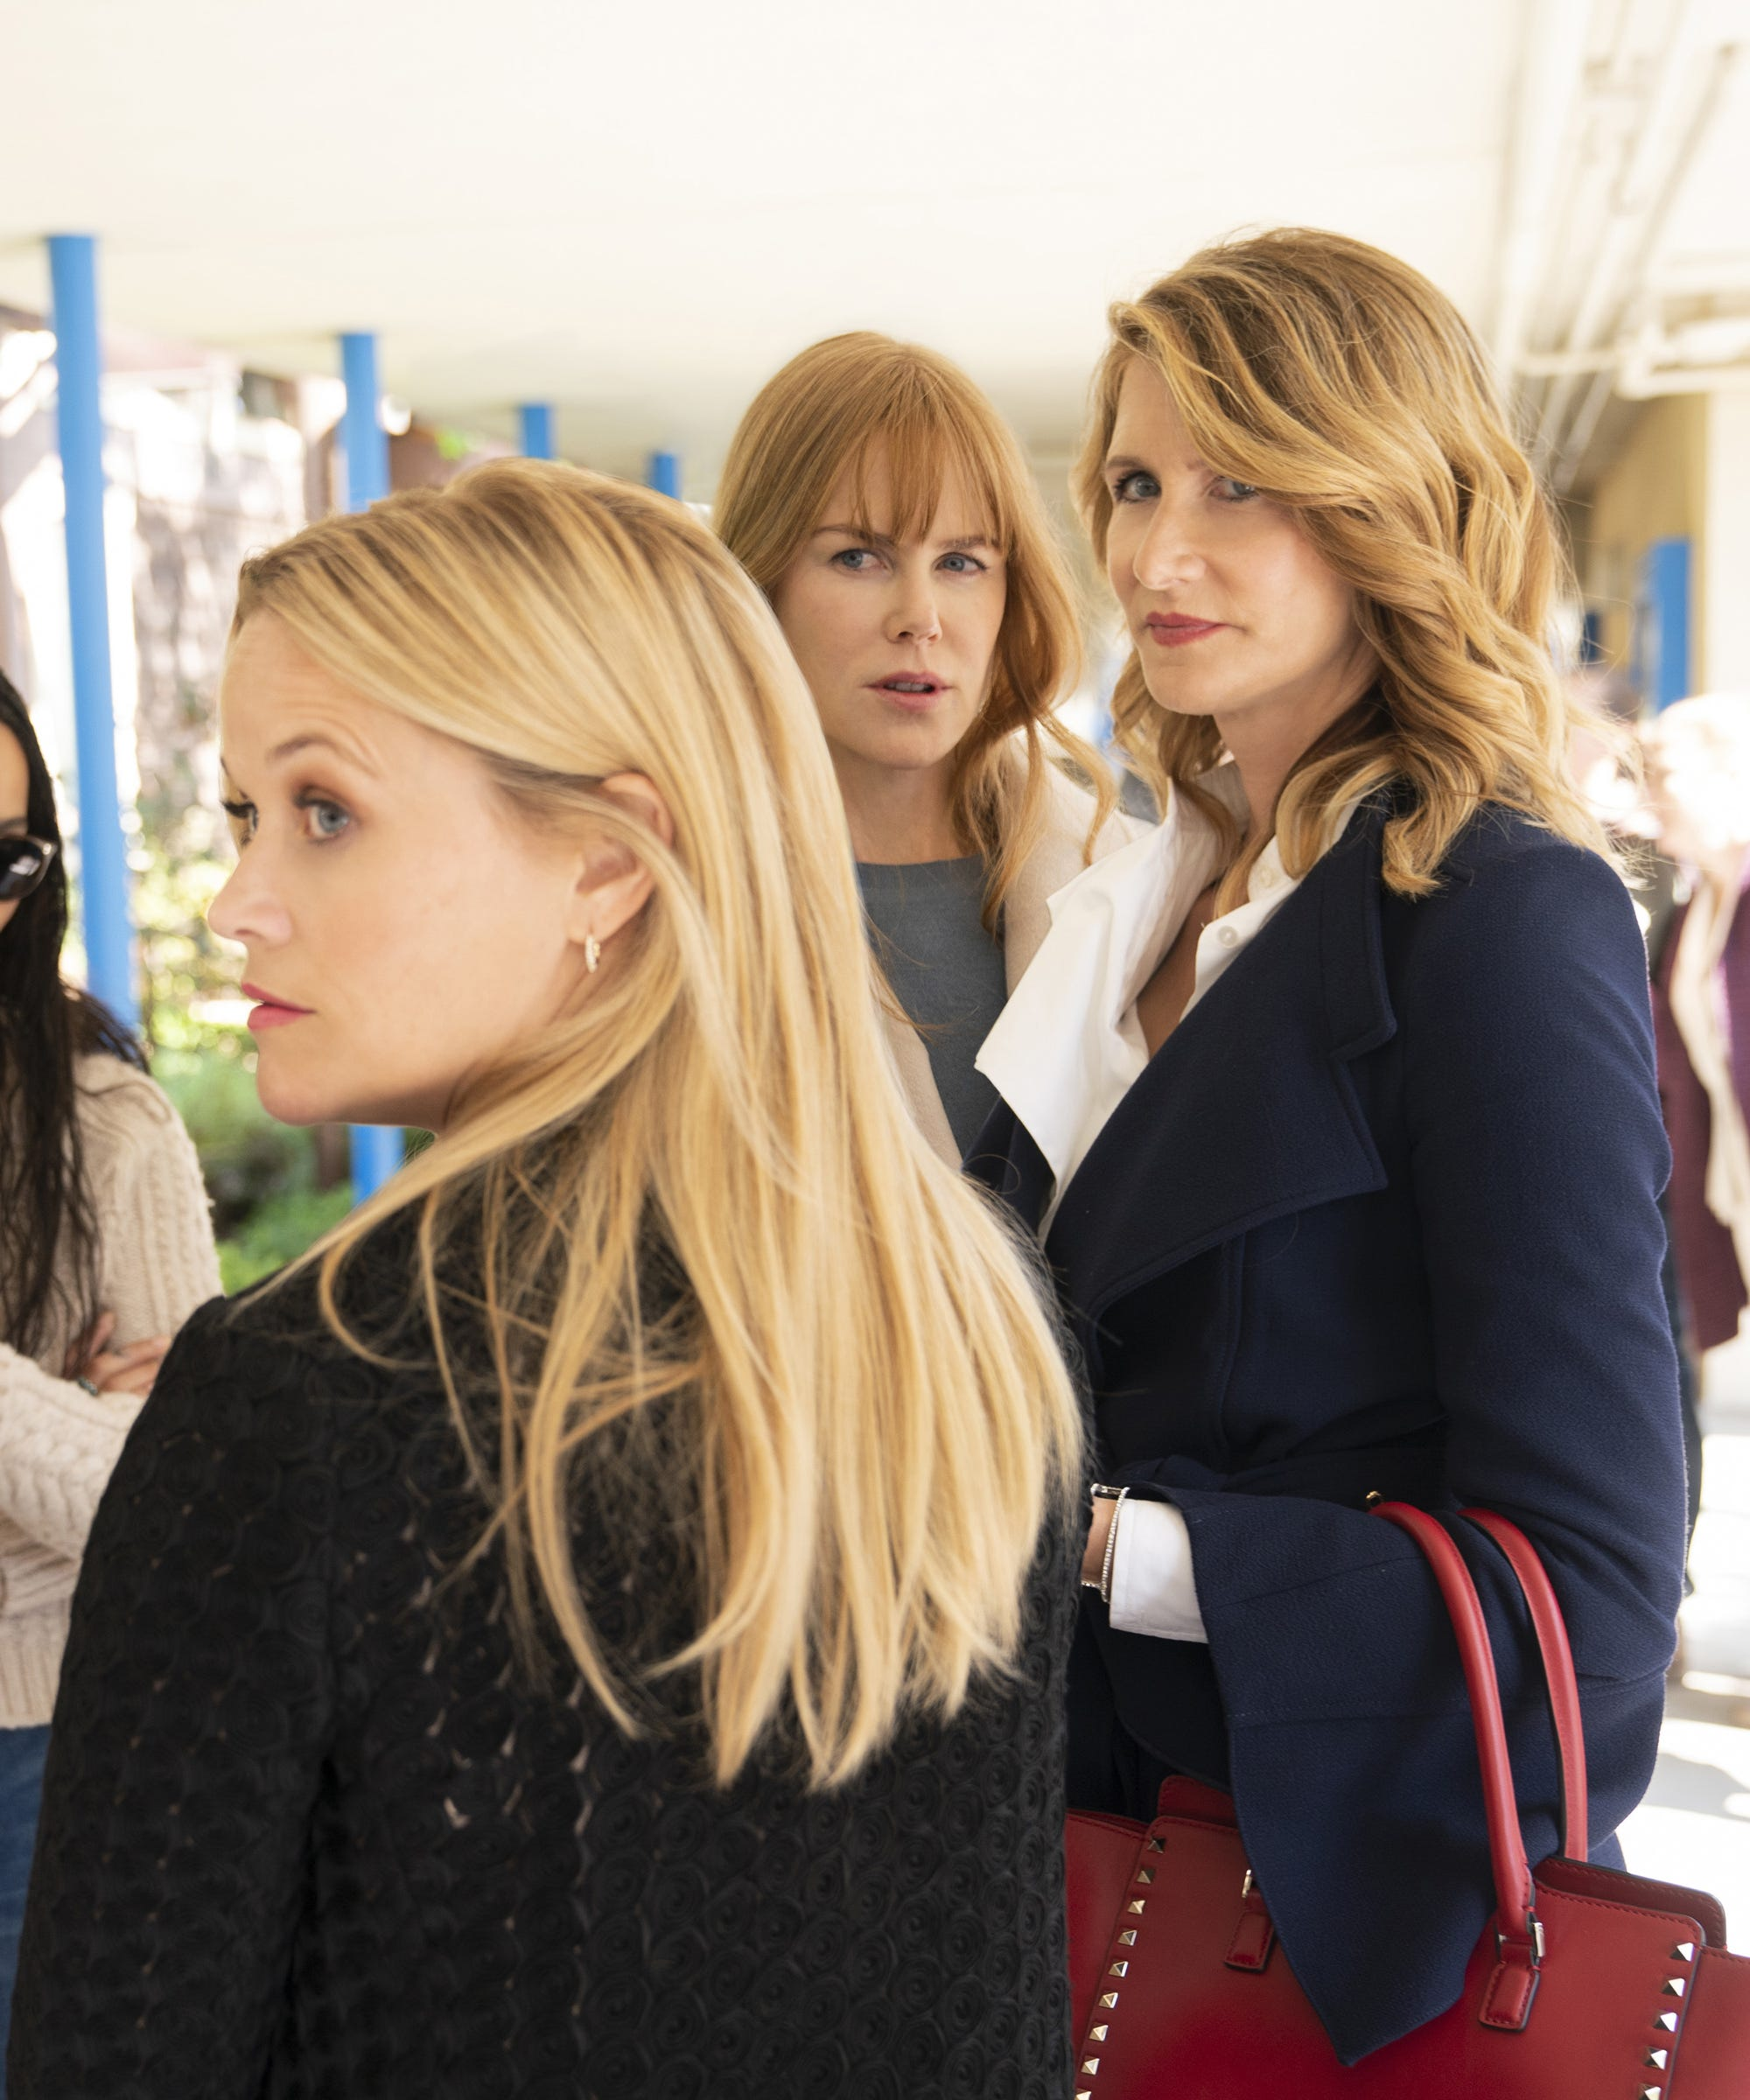 A Brief Guide To Big Little Lies Season 2 Director Andrea Arnold's Best Movies